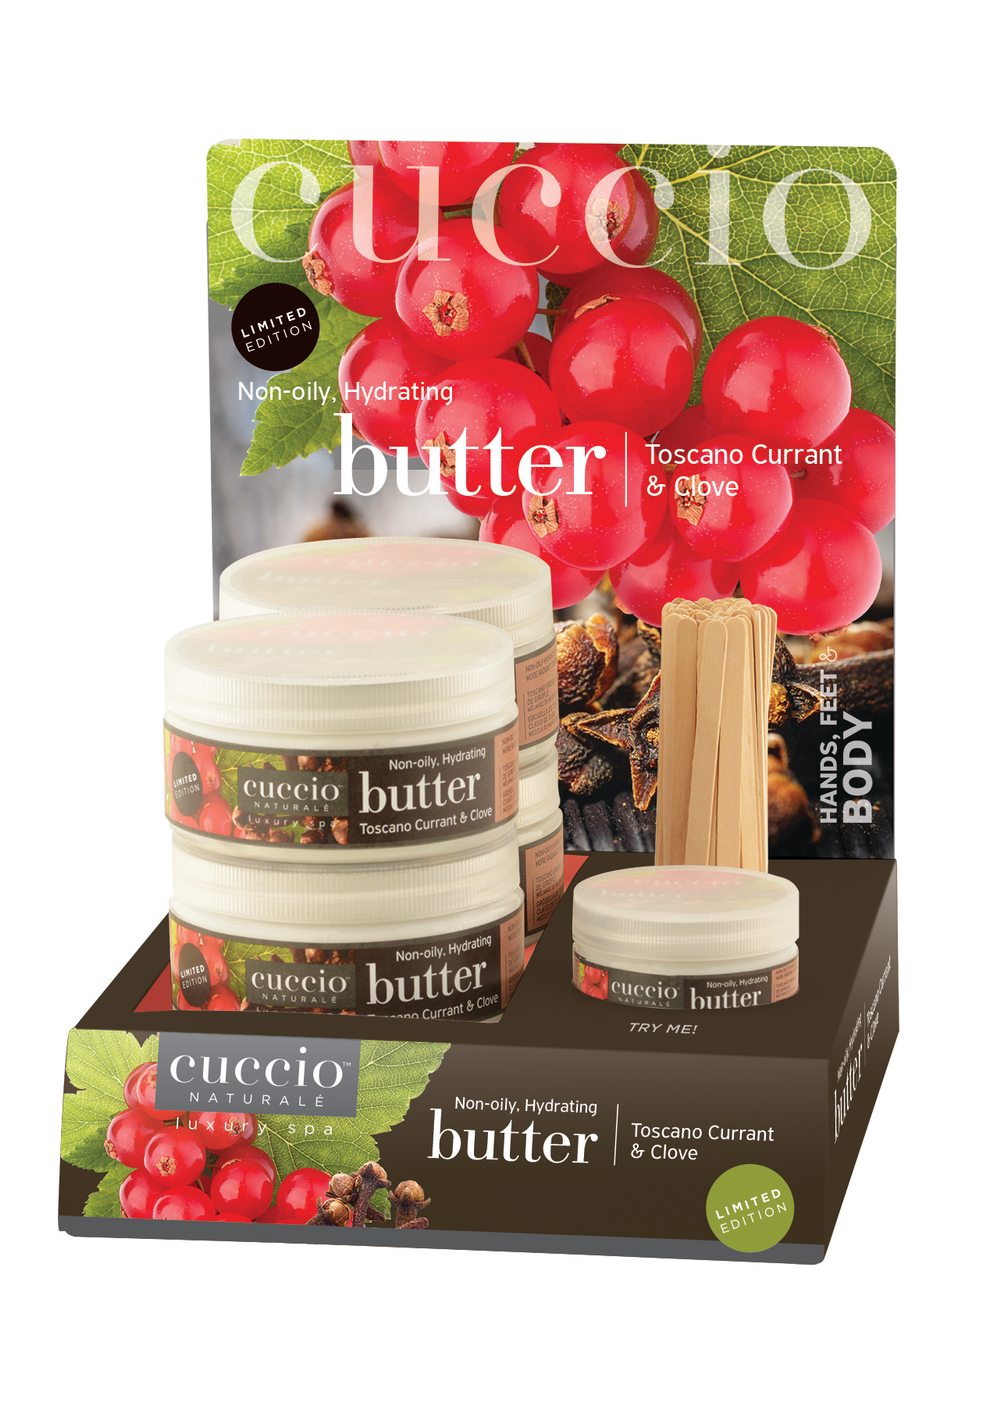 "<p>Cuccio Naturalé's Toscano Currant and Clove Holiday Butter Blend features intense, non-oily hydration for soft, silky skin and the warm, inviting scent of Toscano currant and clove. The perfect gift for friends, family, and co-workers is also a wonderful addition to your holiday retail area.<br /><a href=""http://www.cuccio.com"">www.cuccio.com</a></p>"